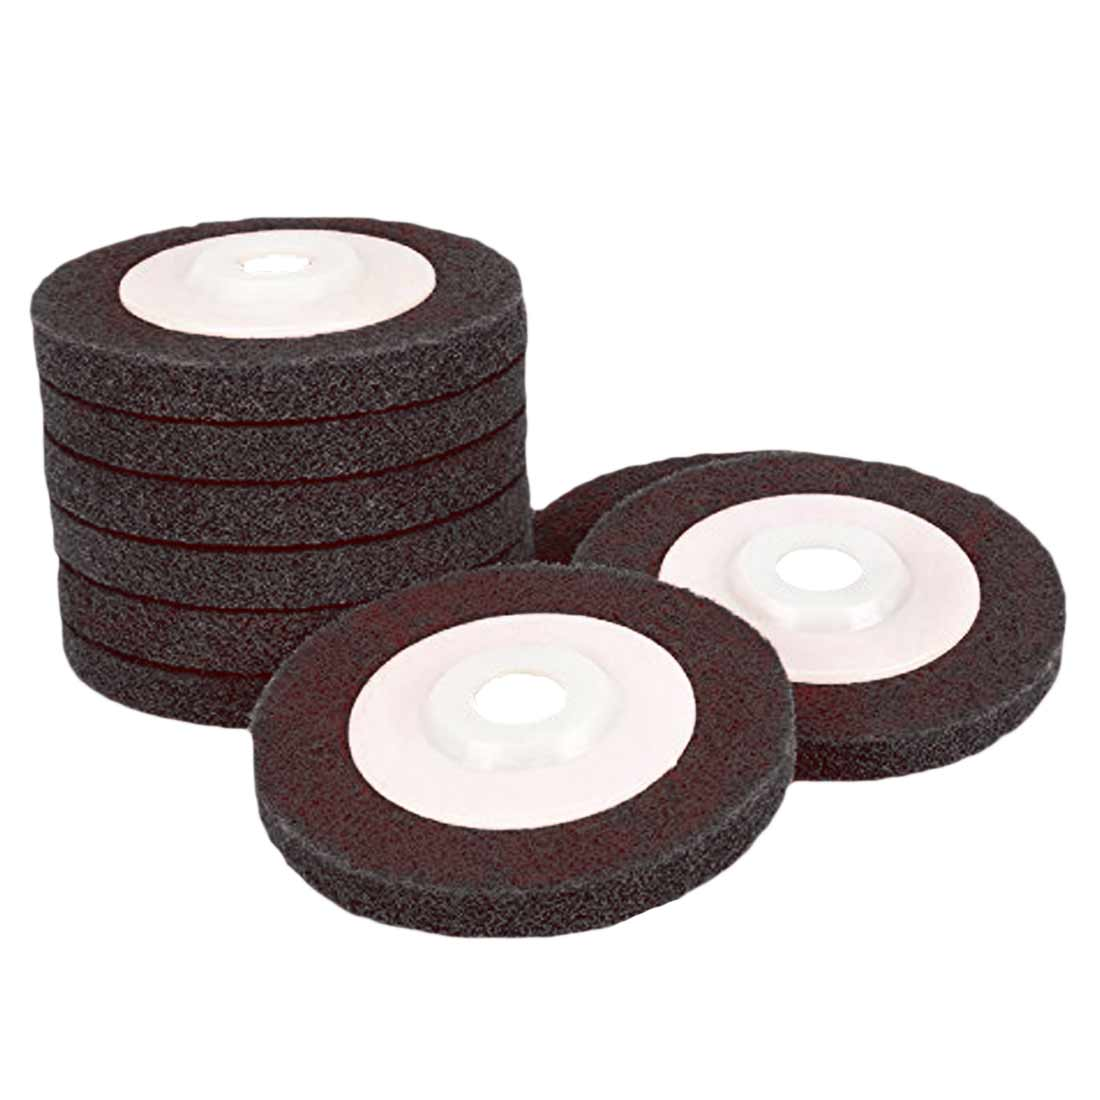 1Pc 100mm Nylon Fiber Polishing Wheel Grinding Disc Abrasive Tools Materials Surface Decoration For Angle Grinder